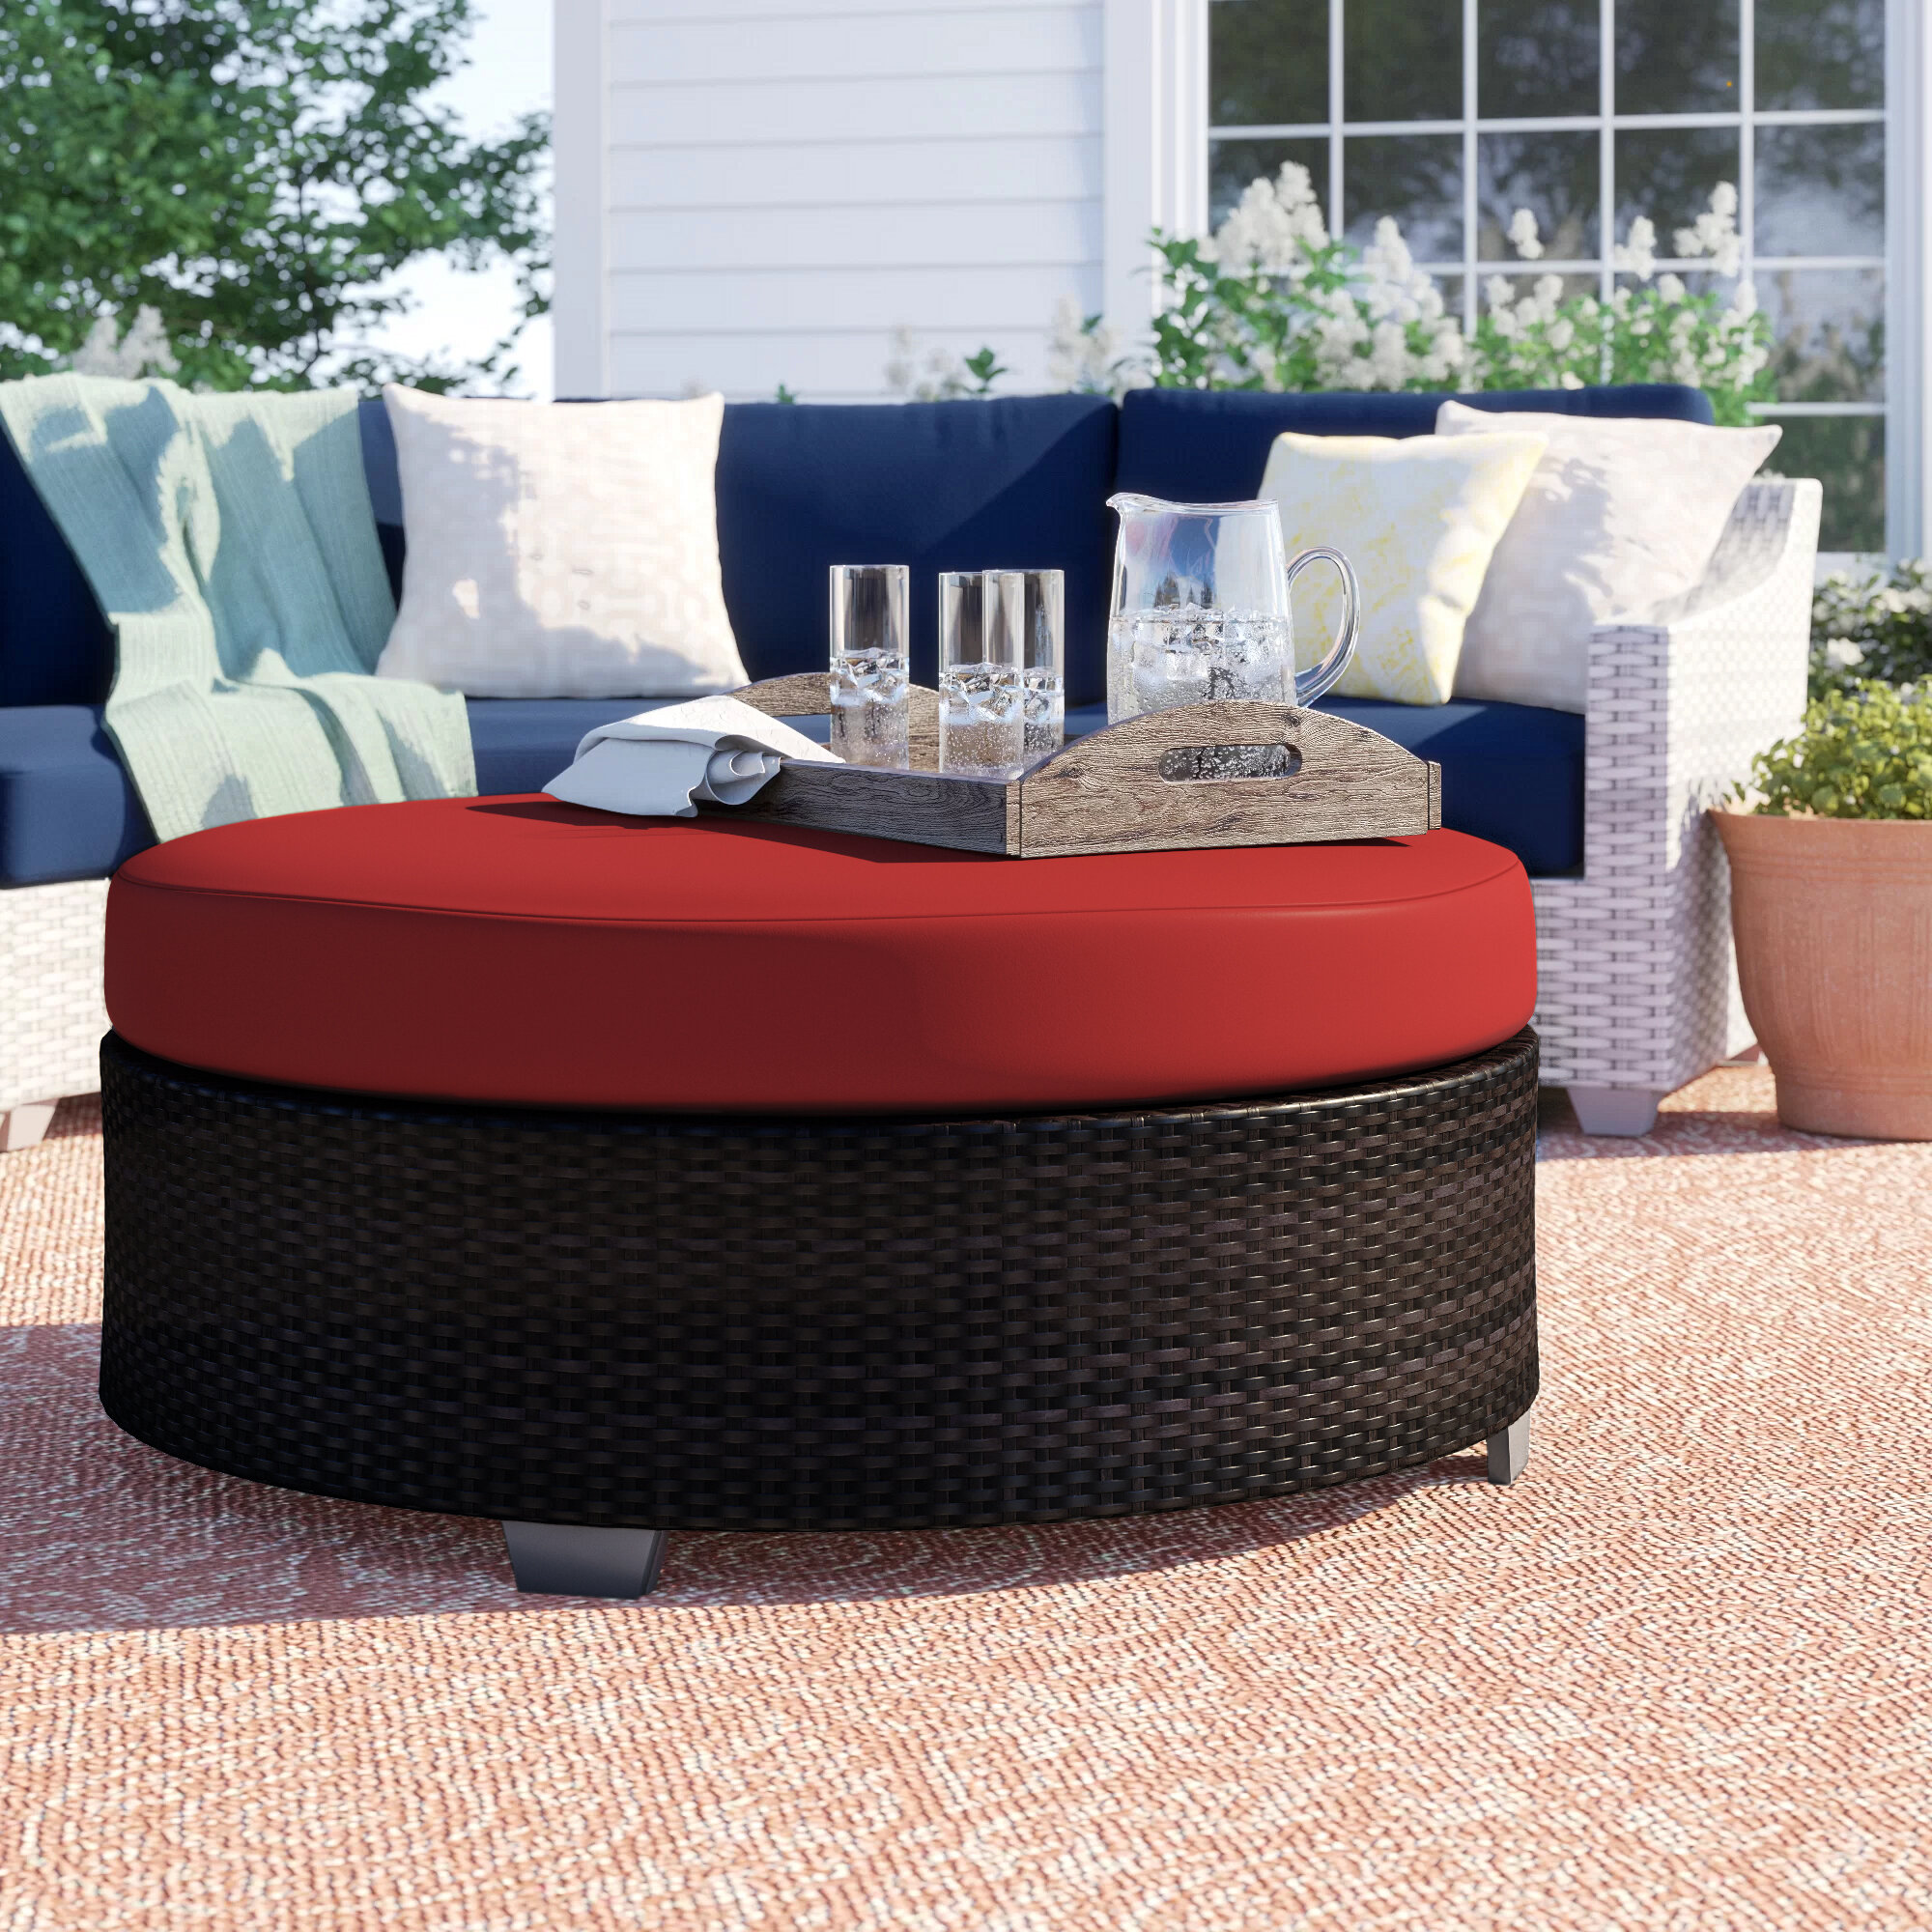 Commercial Use Wicker Rattan Patio Coffee Tables You Ll Love In 2021 Wayfair